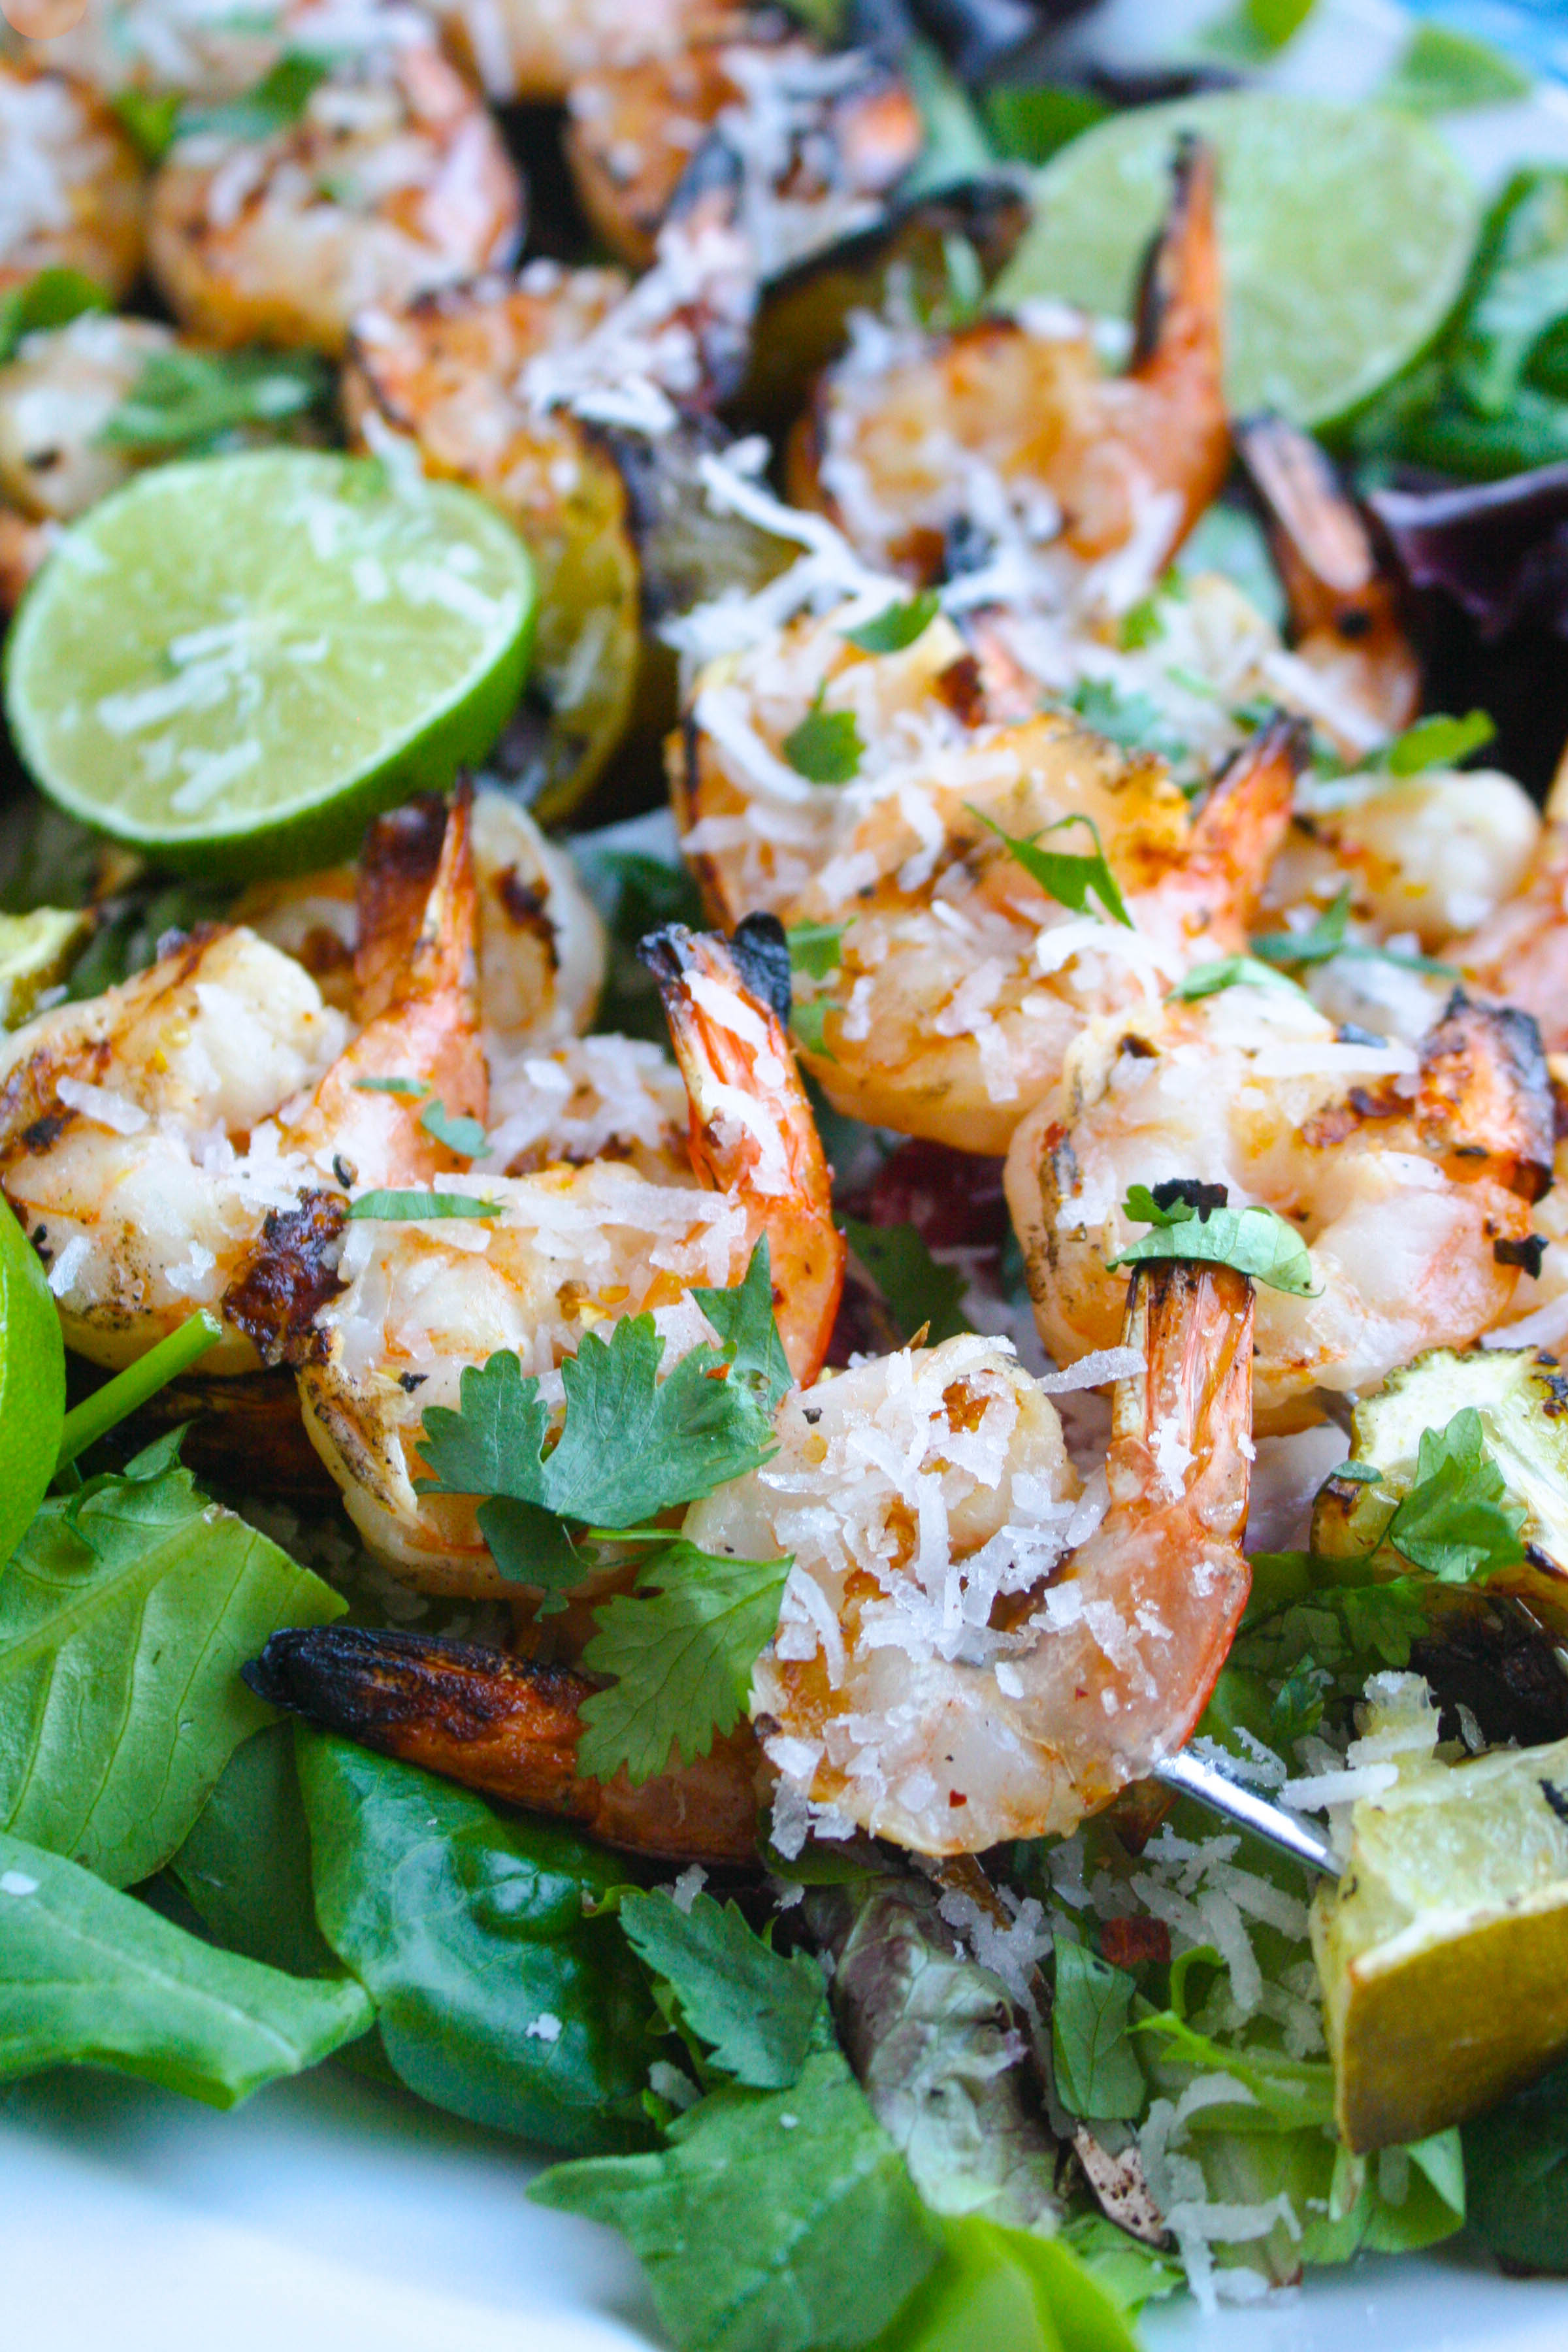 Grilled Spicy Coconut-Lime Shrimp Skewers are one of summer's best grilling recipes! This dish is easy to make and big on flavor!